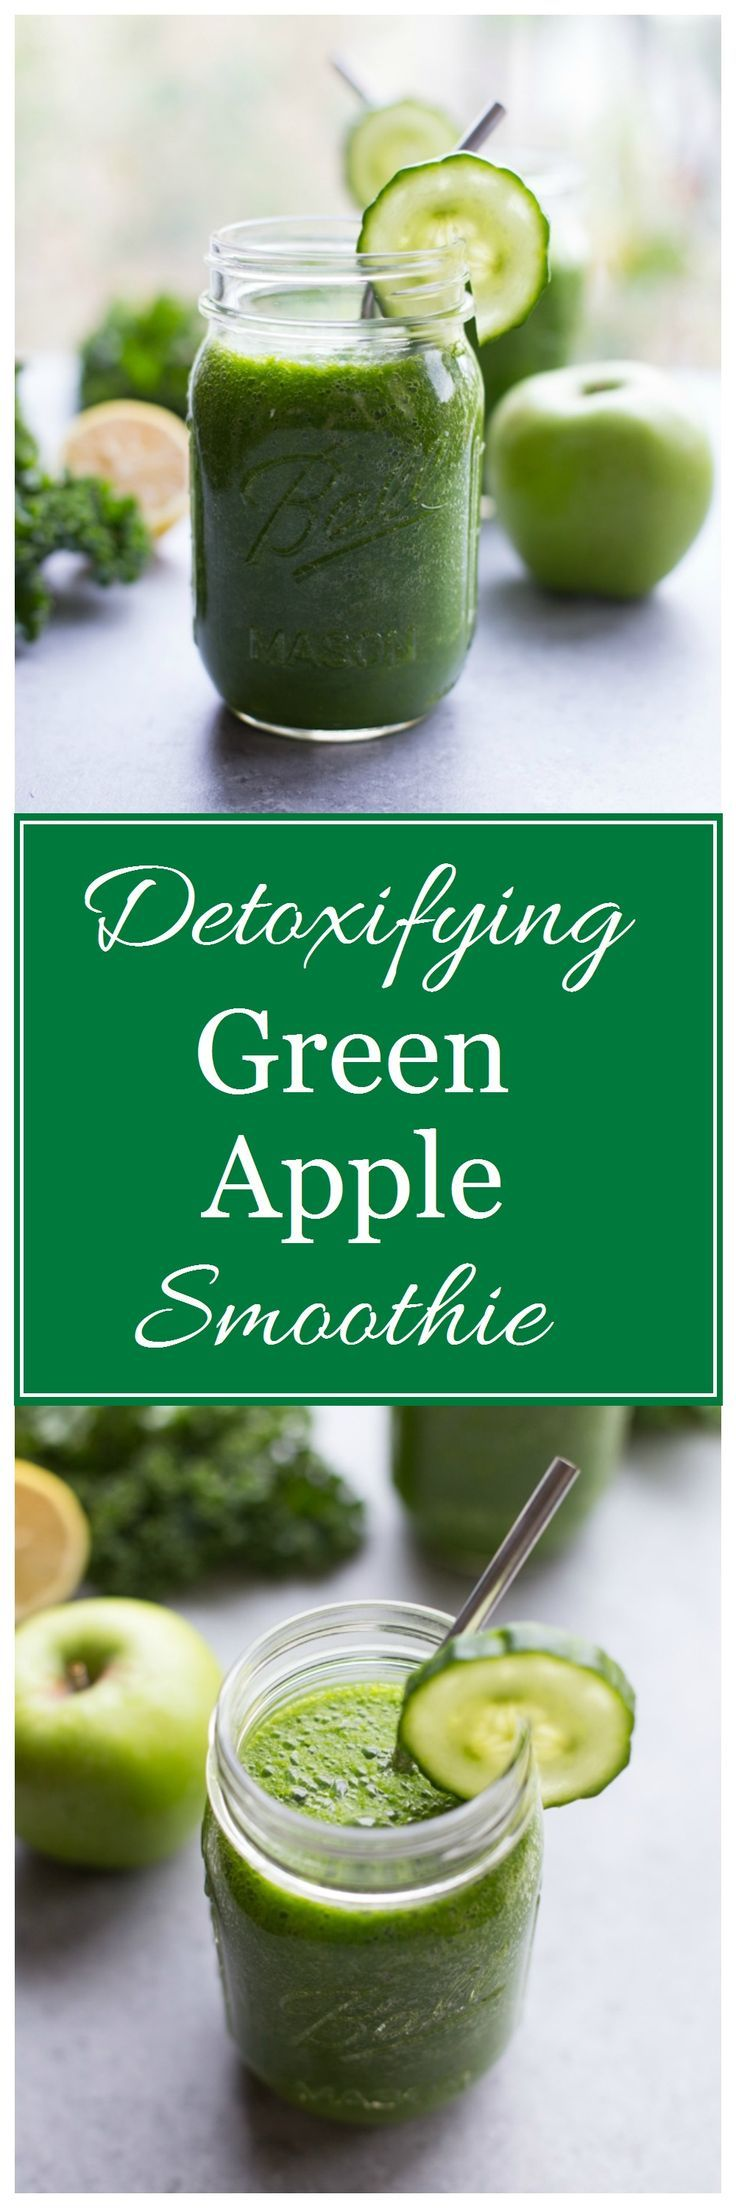 Detoxifying Green Apple Smoothie- packed full of healthy nutrients to help you glow from the inside out!